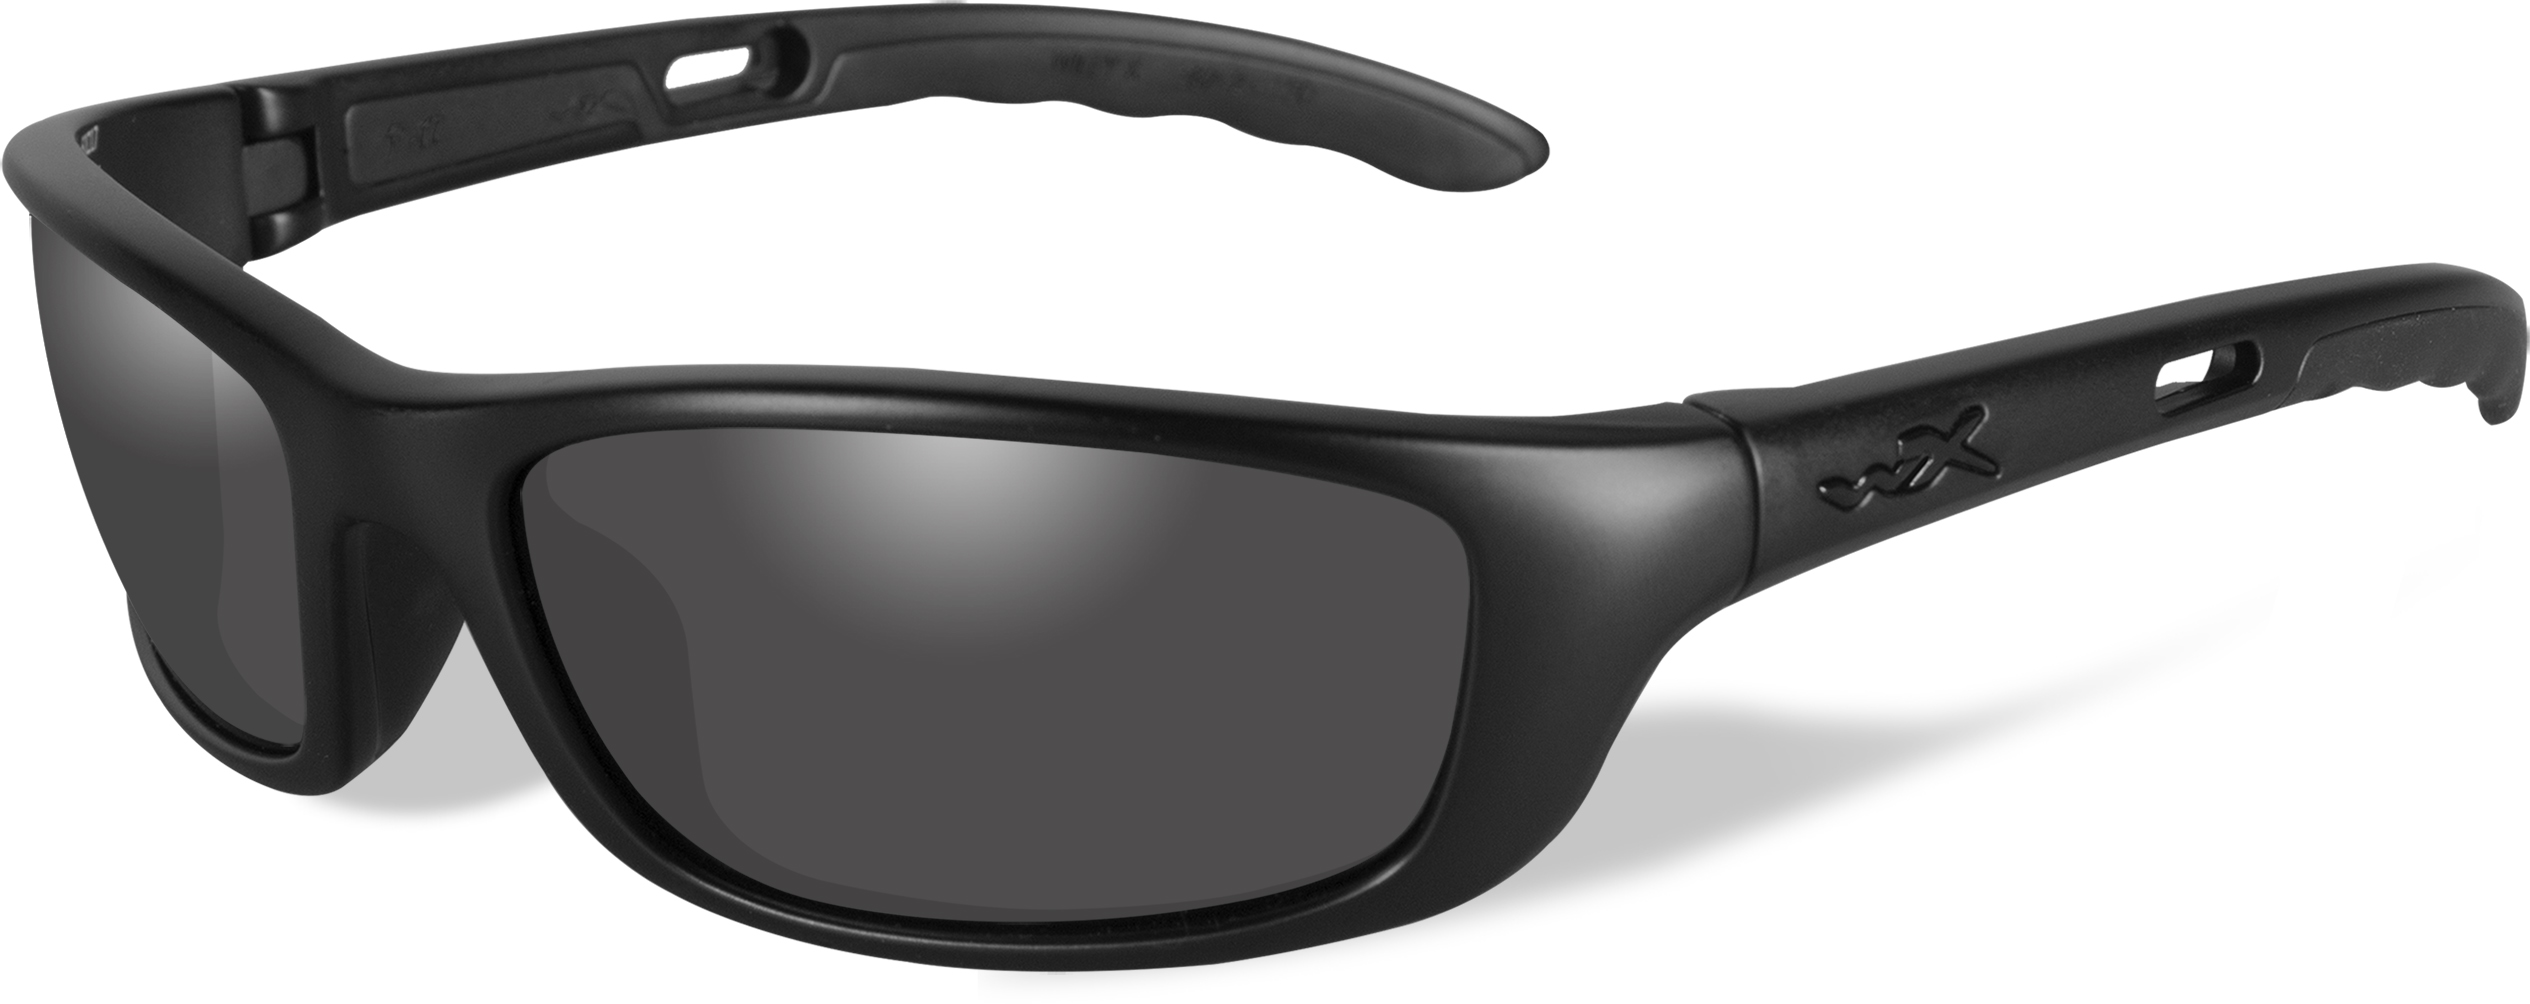 7ff1364029 Wiley X P-17 Sunglasses